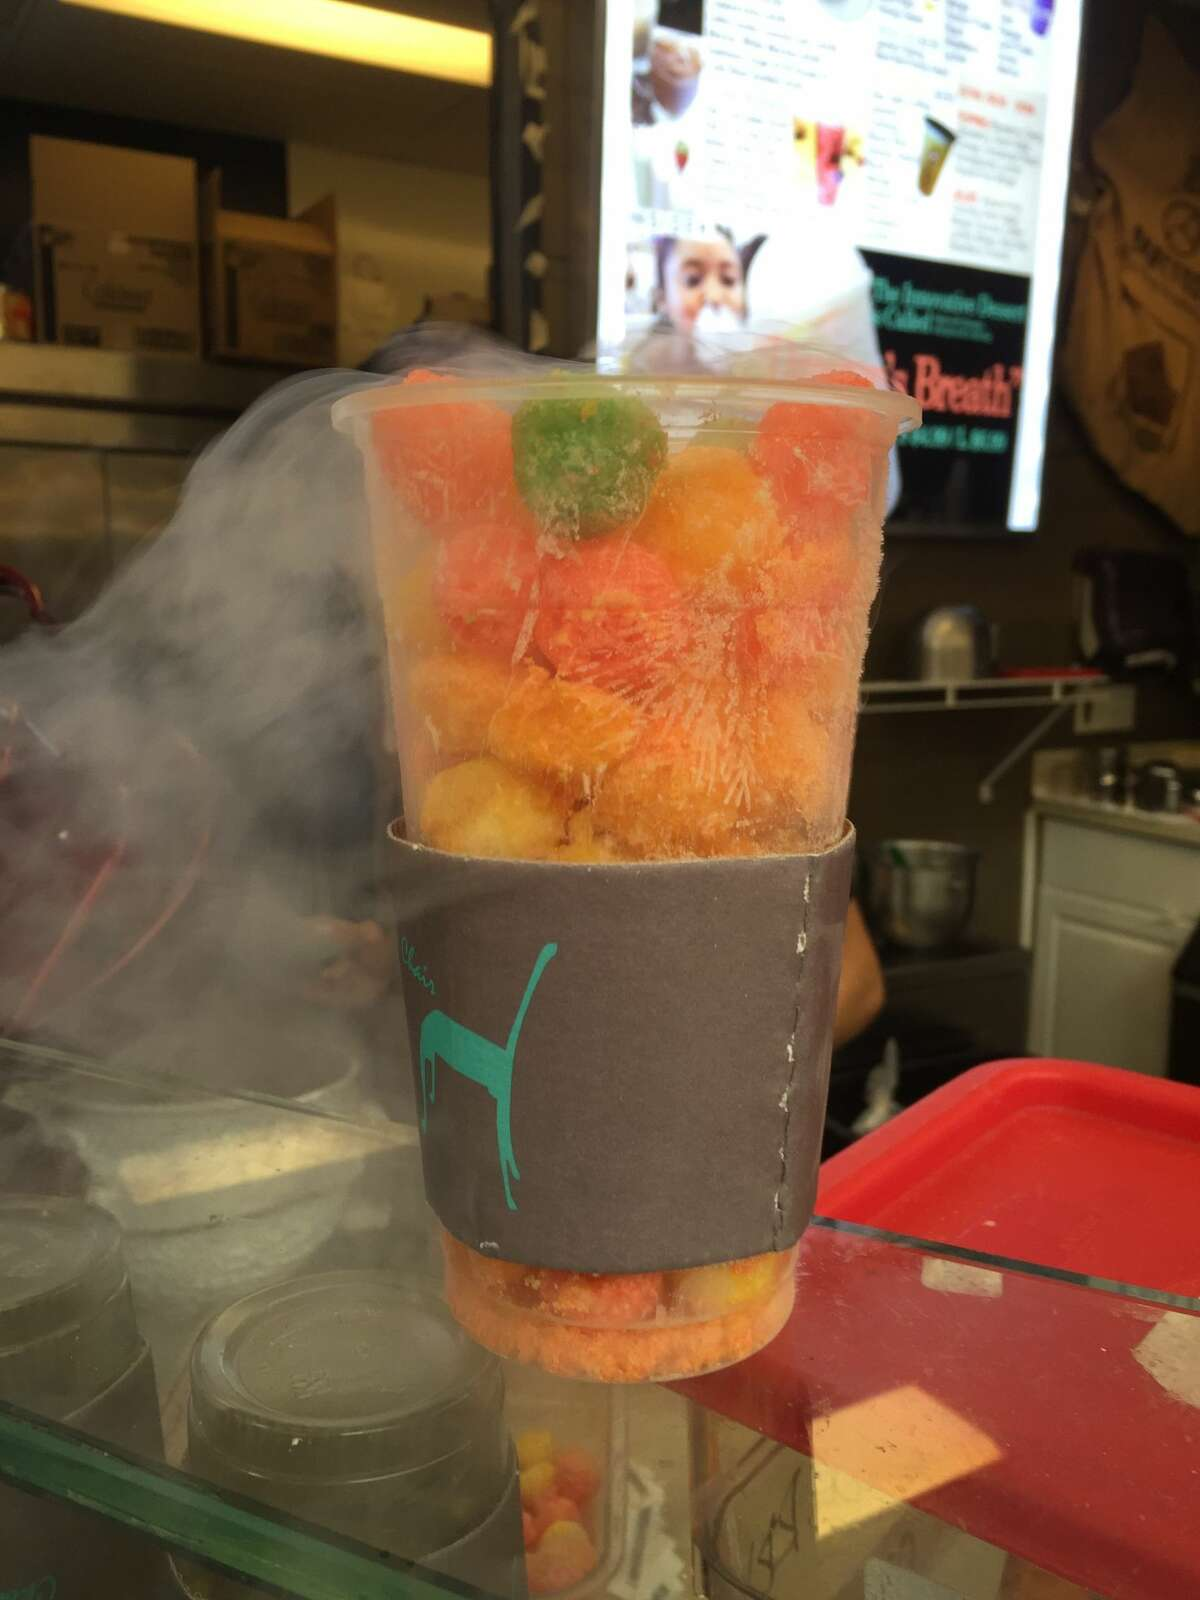 Dragon's Breath cereal puffs soaked in liquid nitrogen emit a fog-like gas at Chocolate Chair in San Francisco's Japantown.